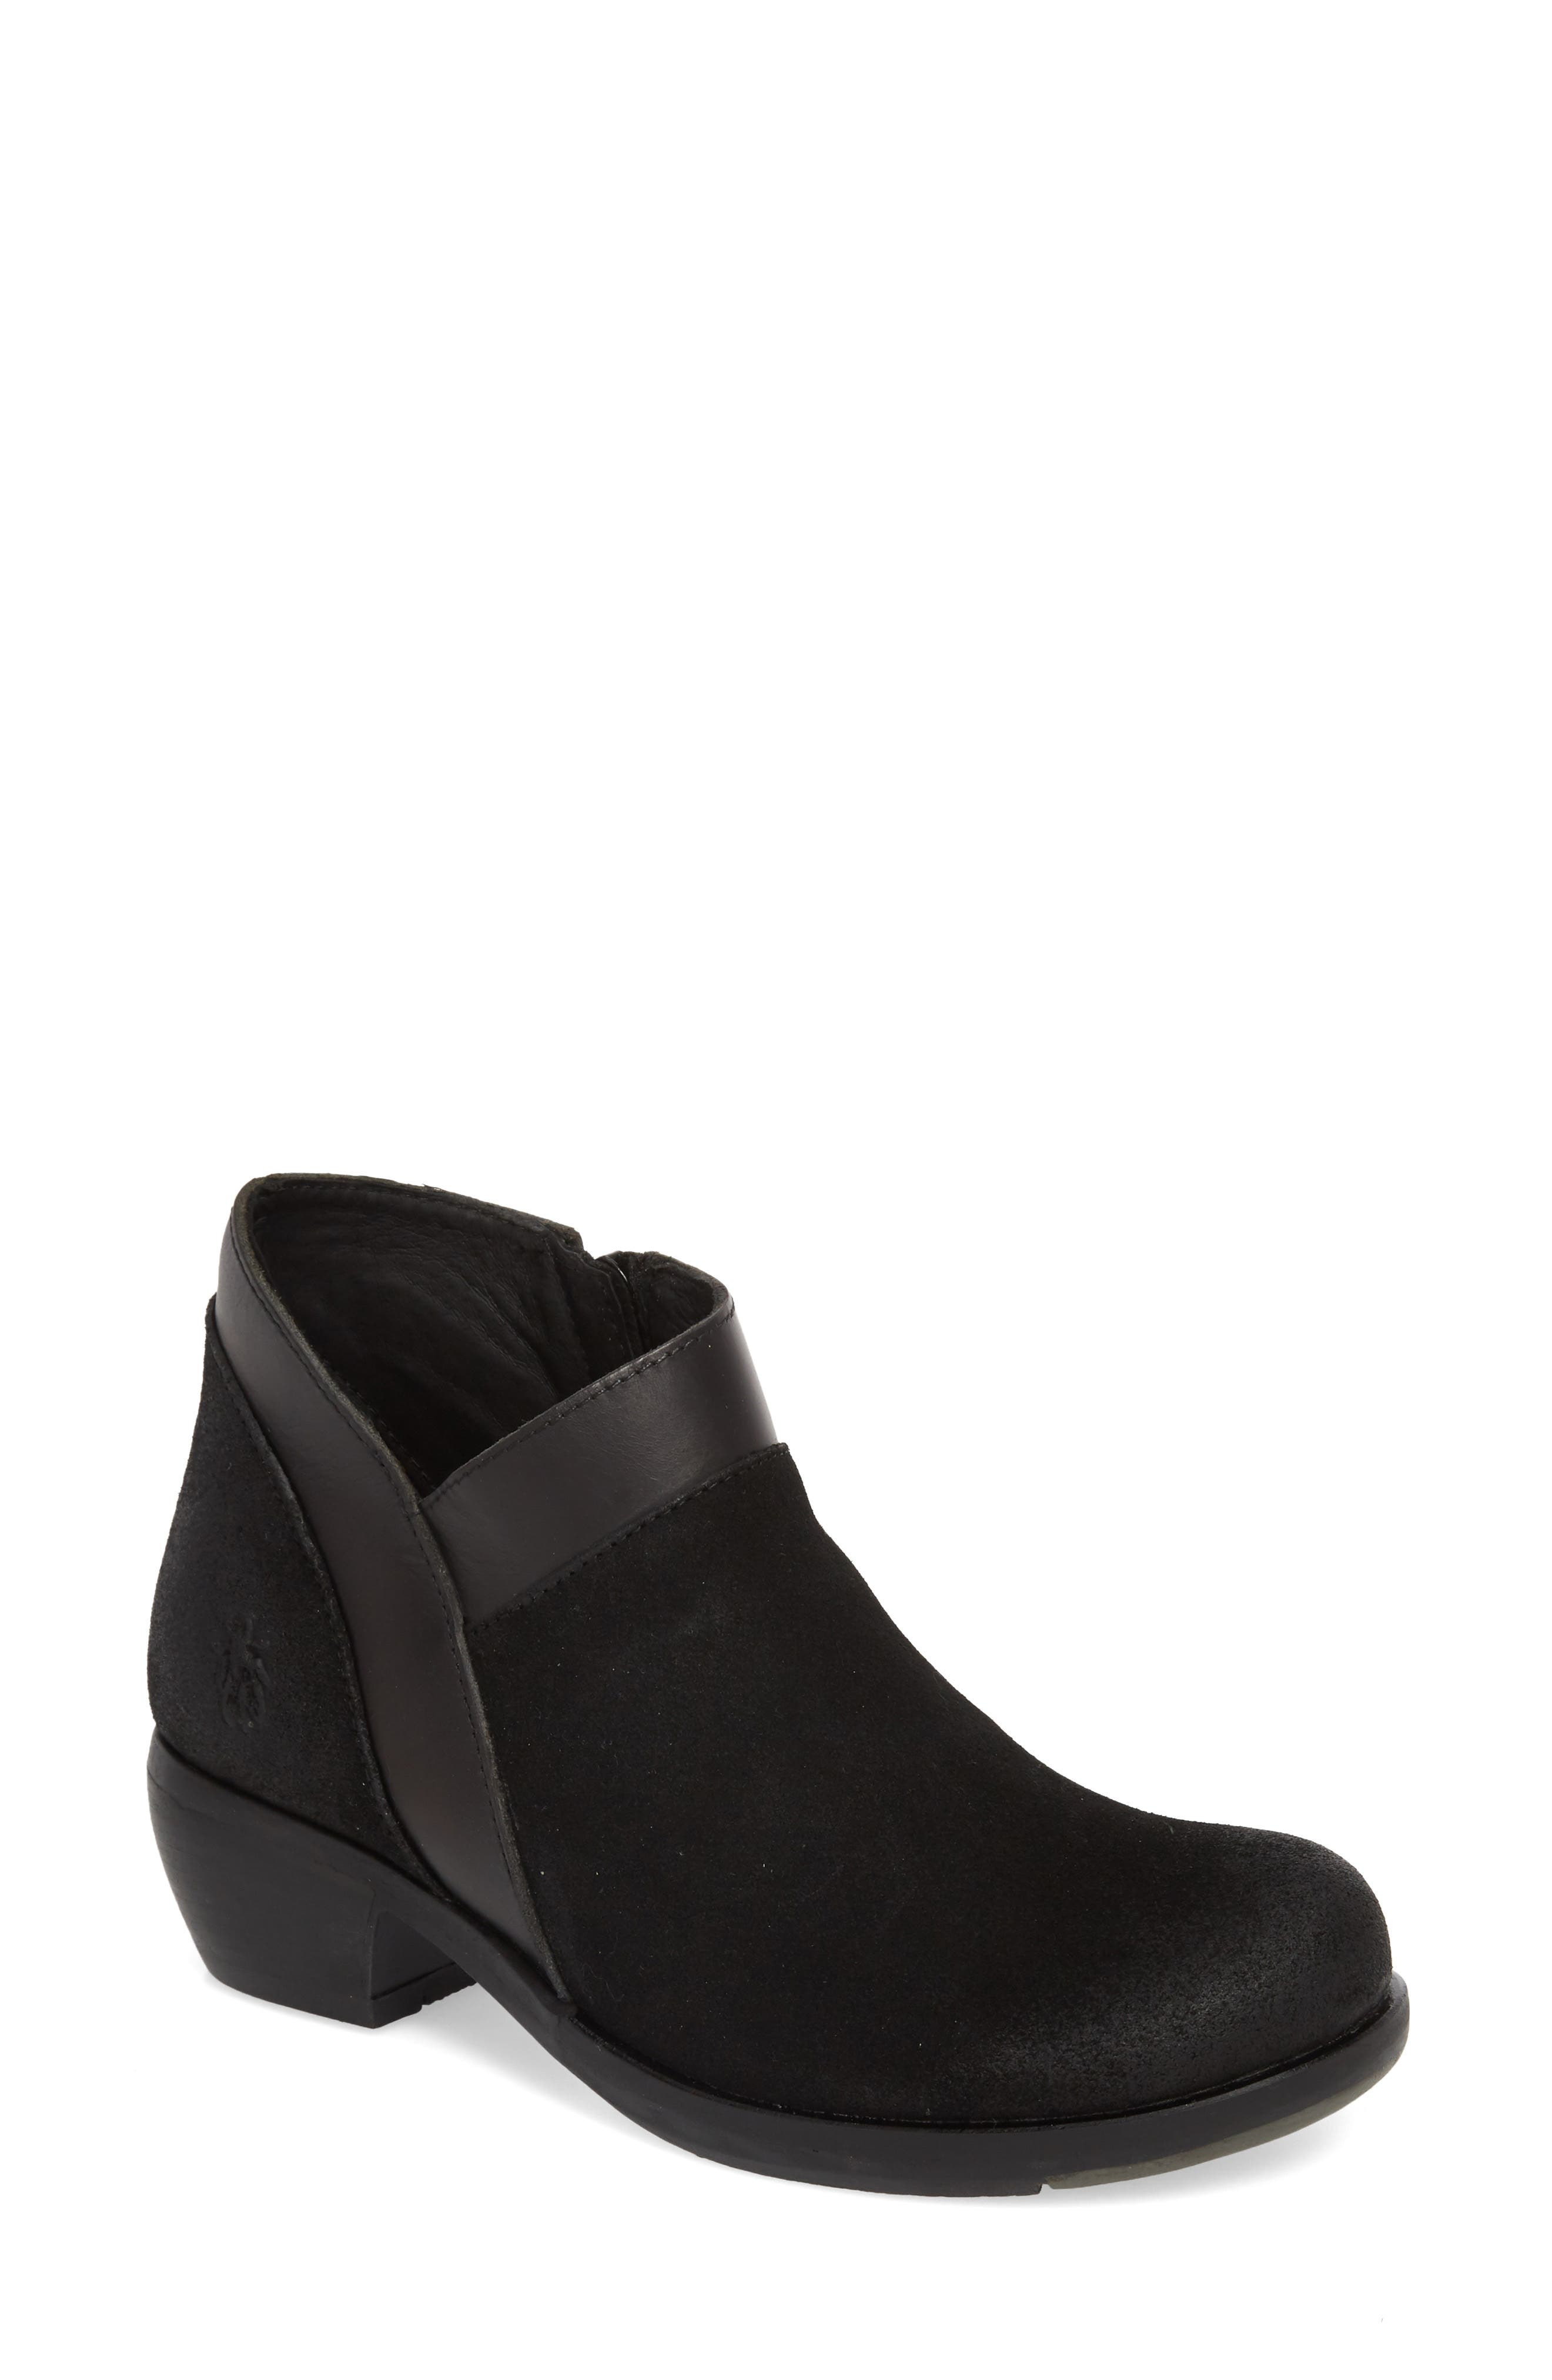 Fly London Meba Mixed Media Bootie - Black